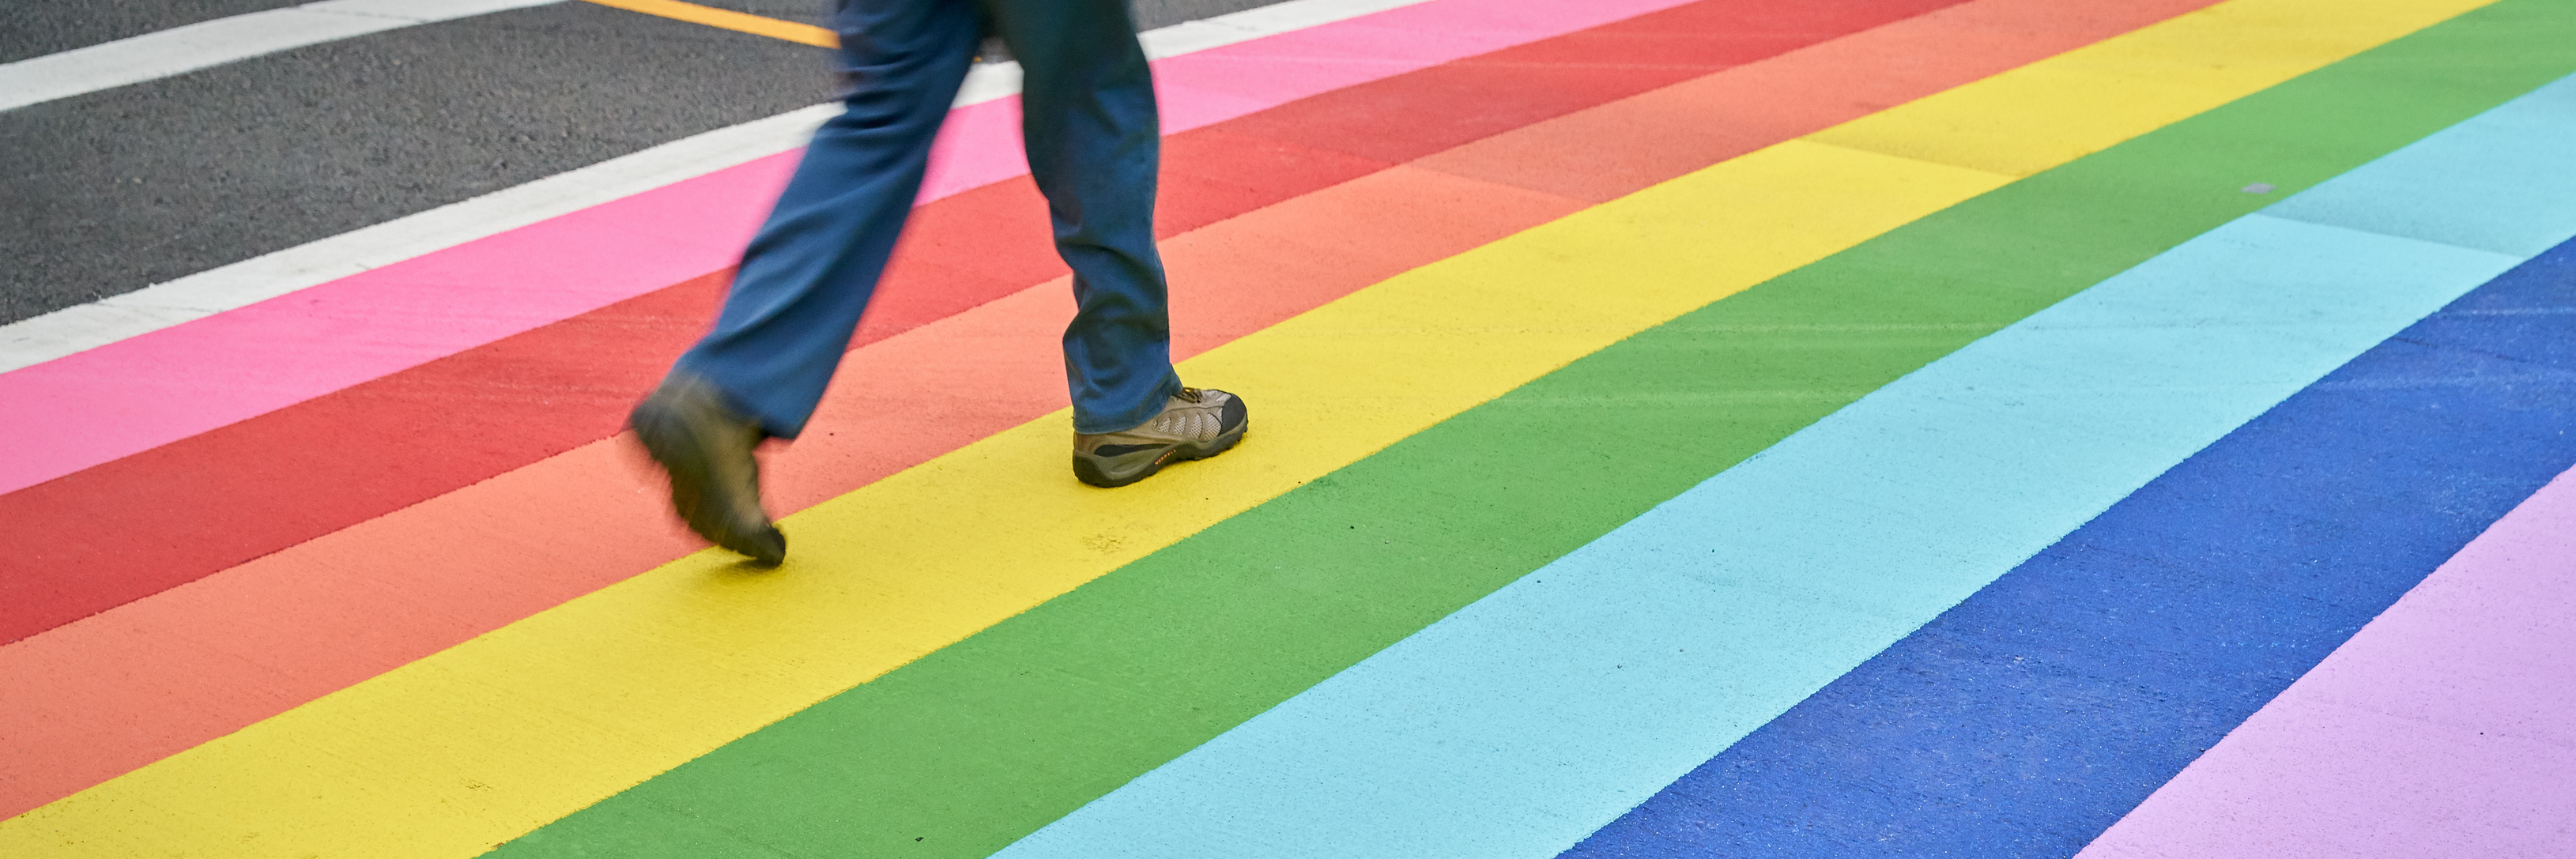 A pedestrian using the rainbow colored crosswalk in downtown Vancouver.